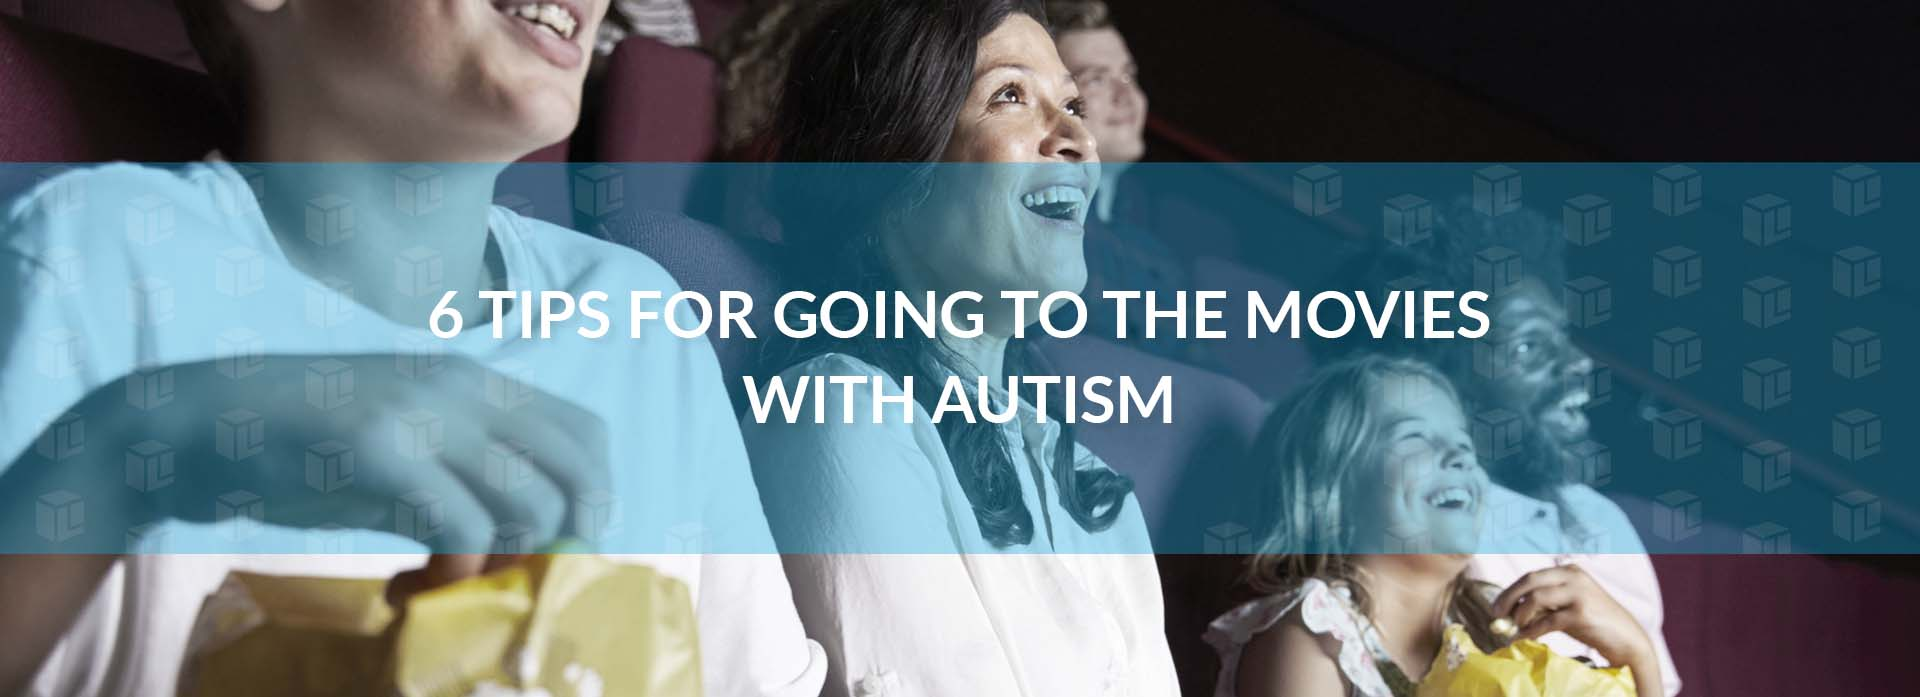 6-Tips-For-Going-To-The-Movies-With-Autism